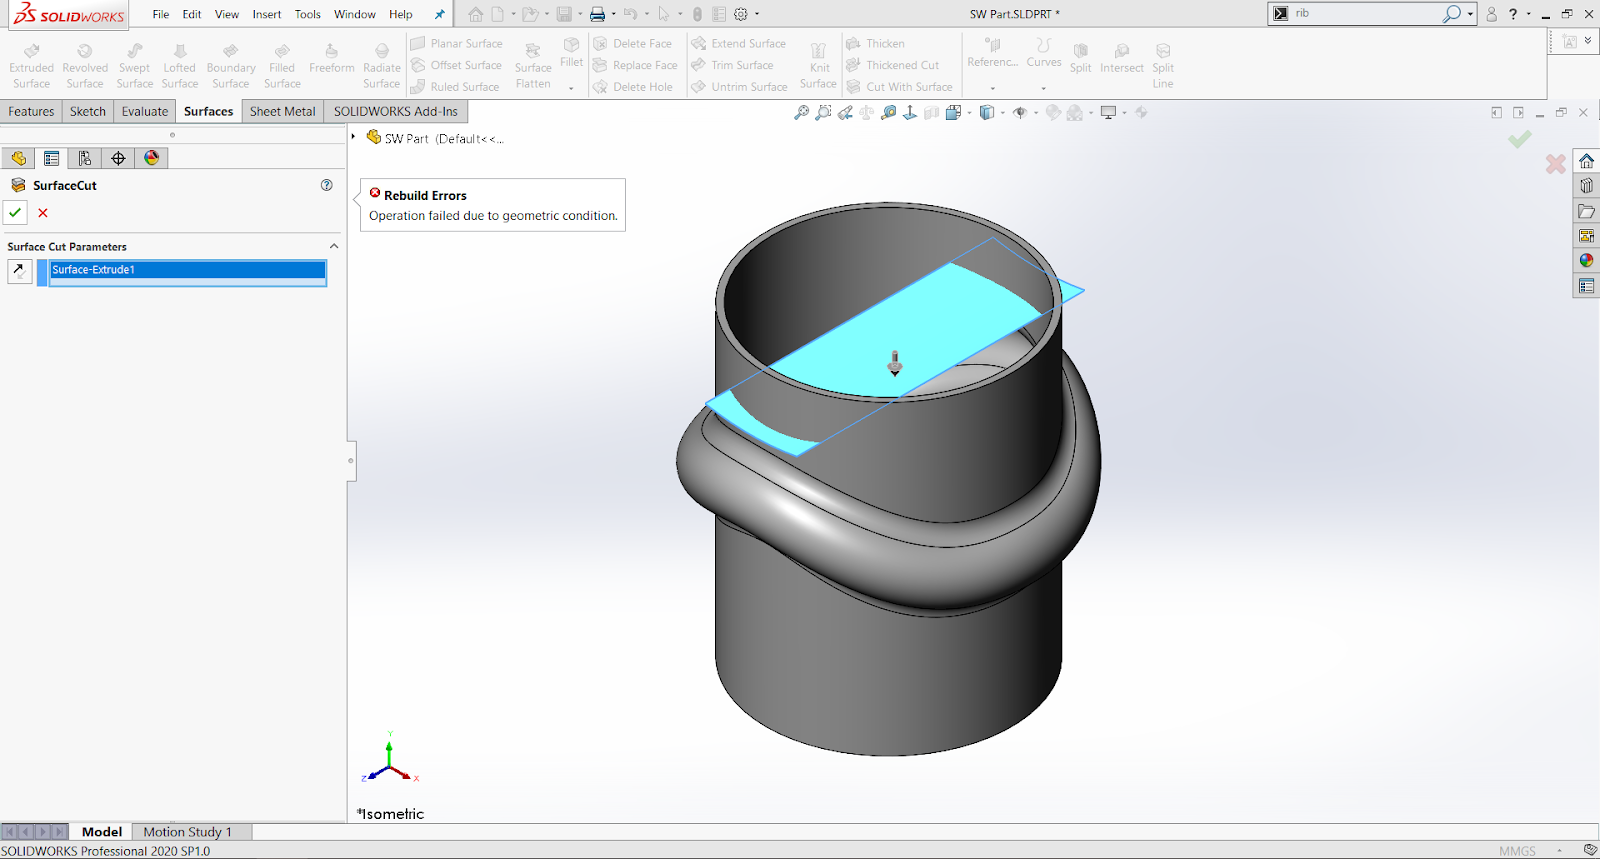 solidworks_vs_onshape-SolidworksSplitCutWithSurface